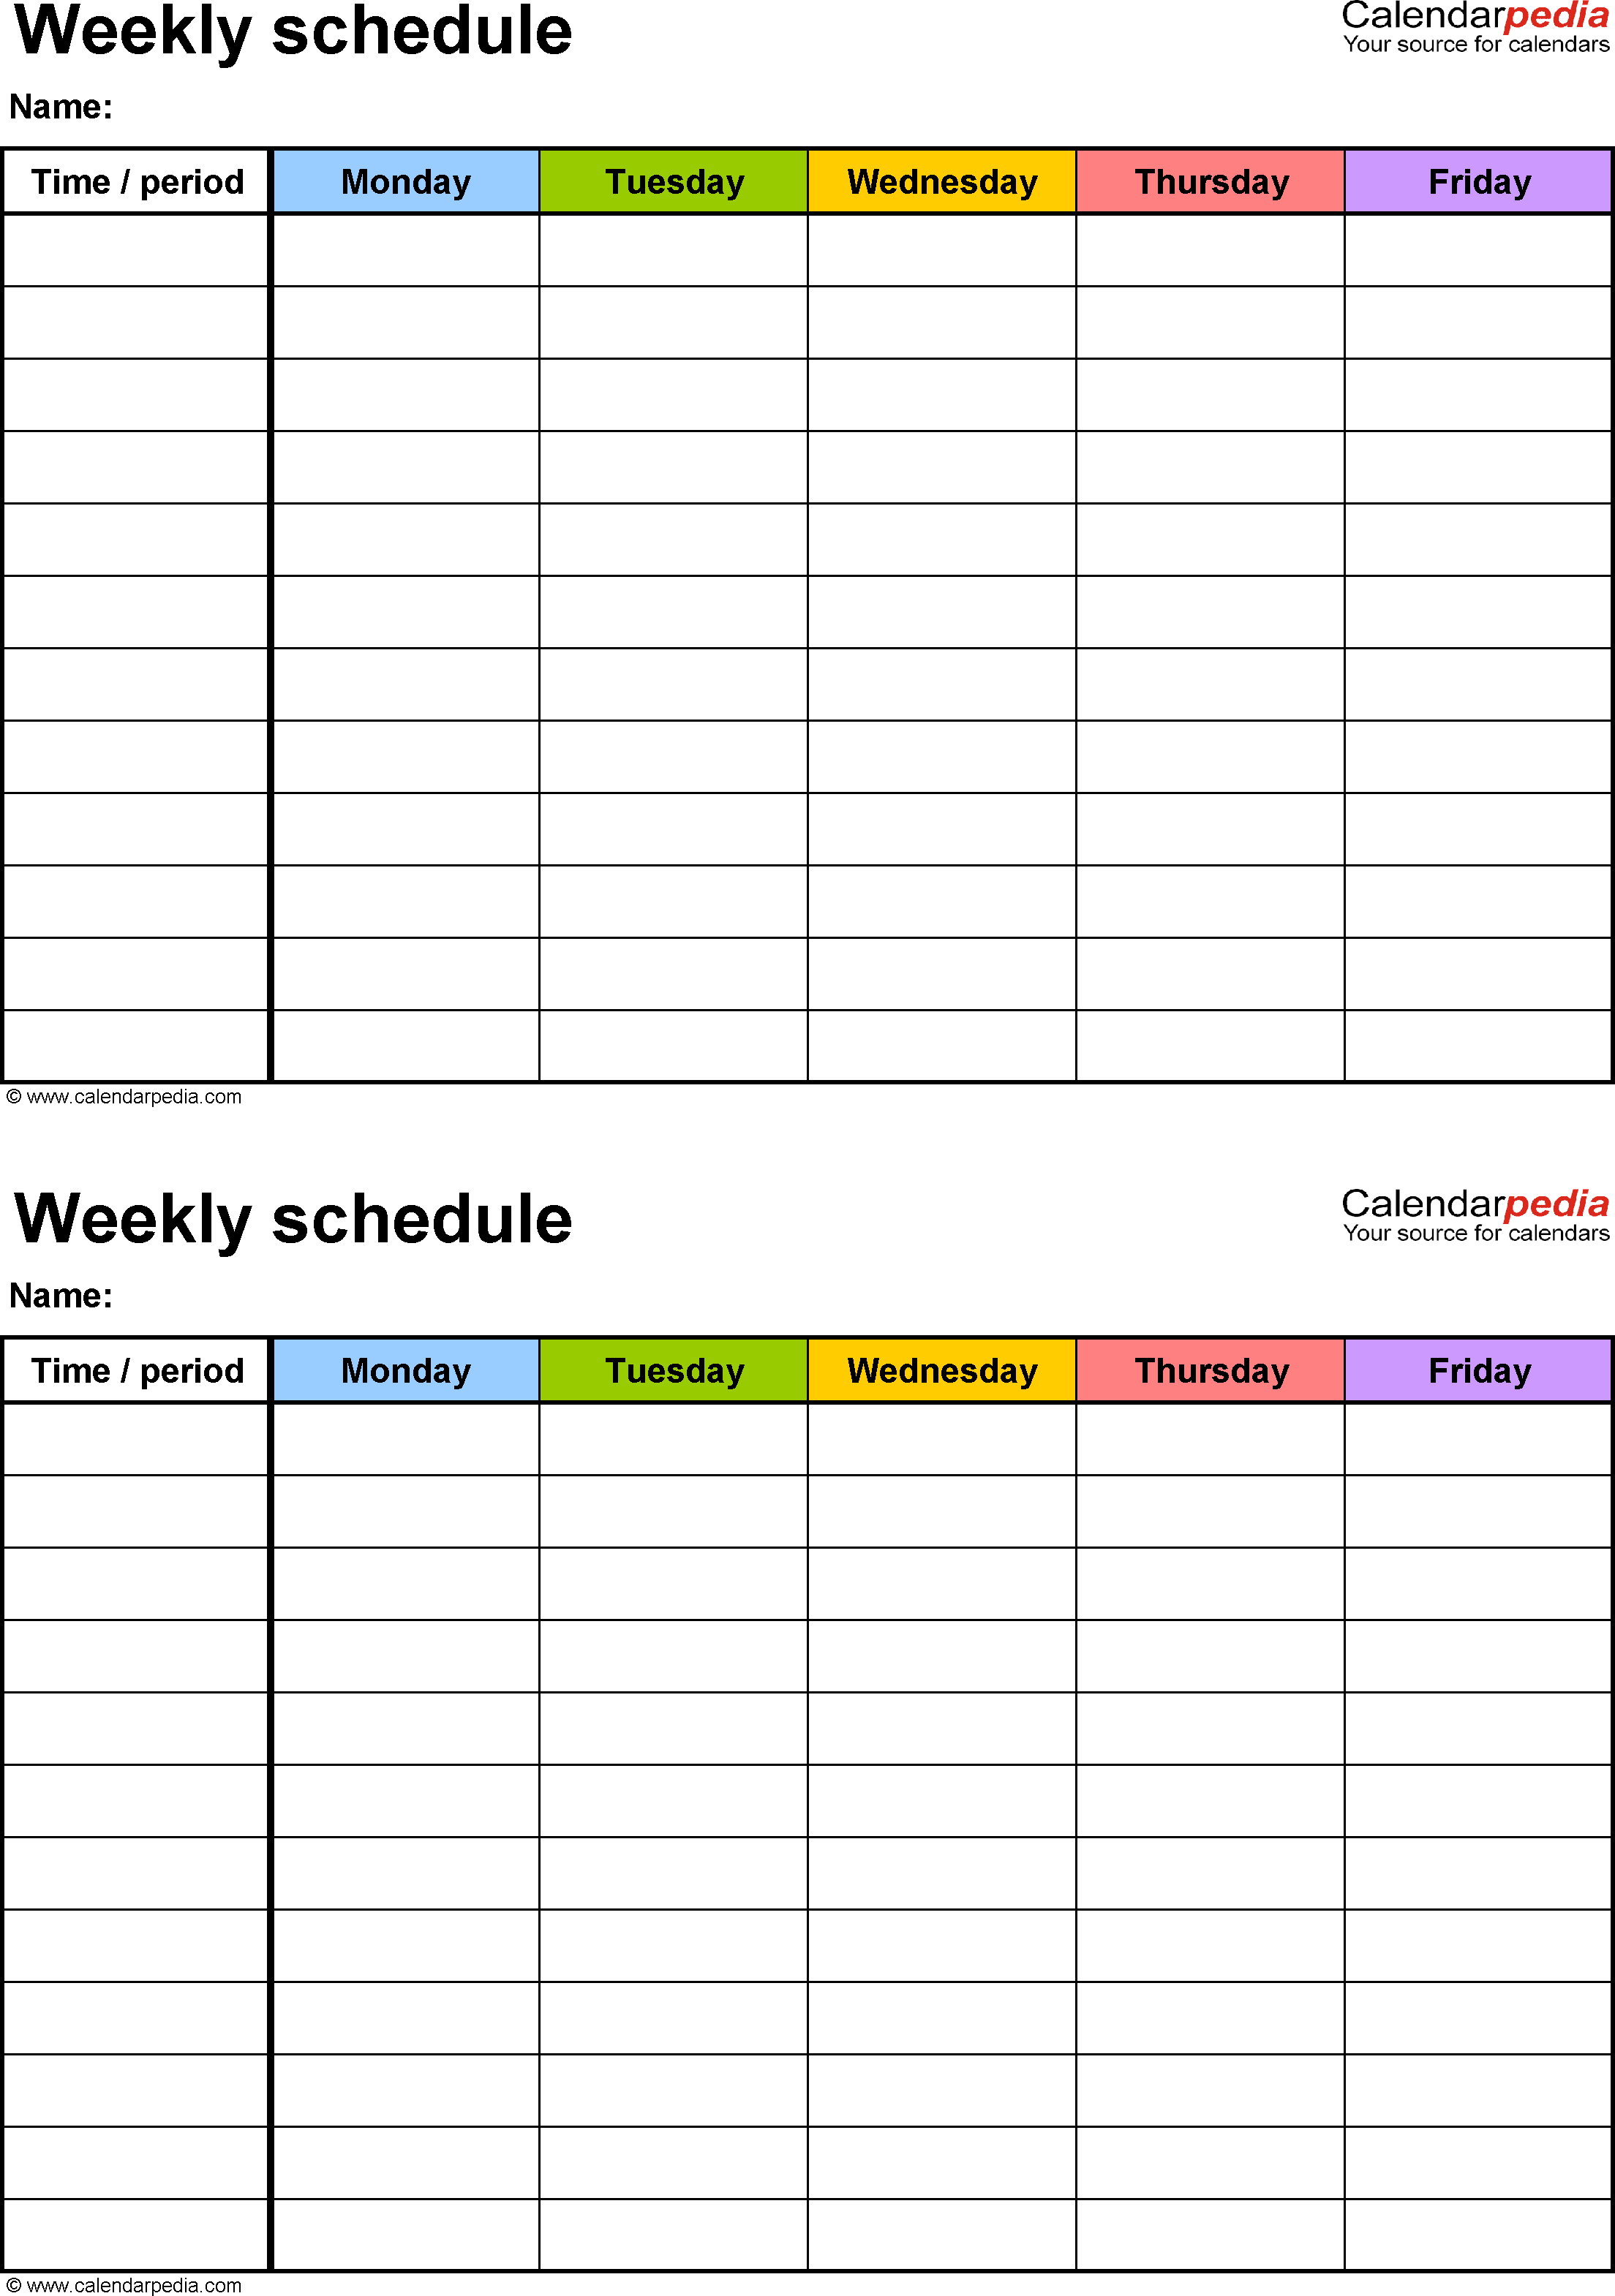 Free Weekly Schedule Templates For Word - 18 Templates pertaining to Blank Calendar Printable 5 Day